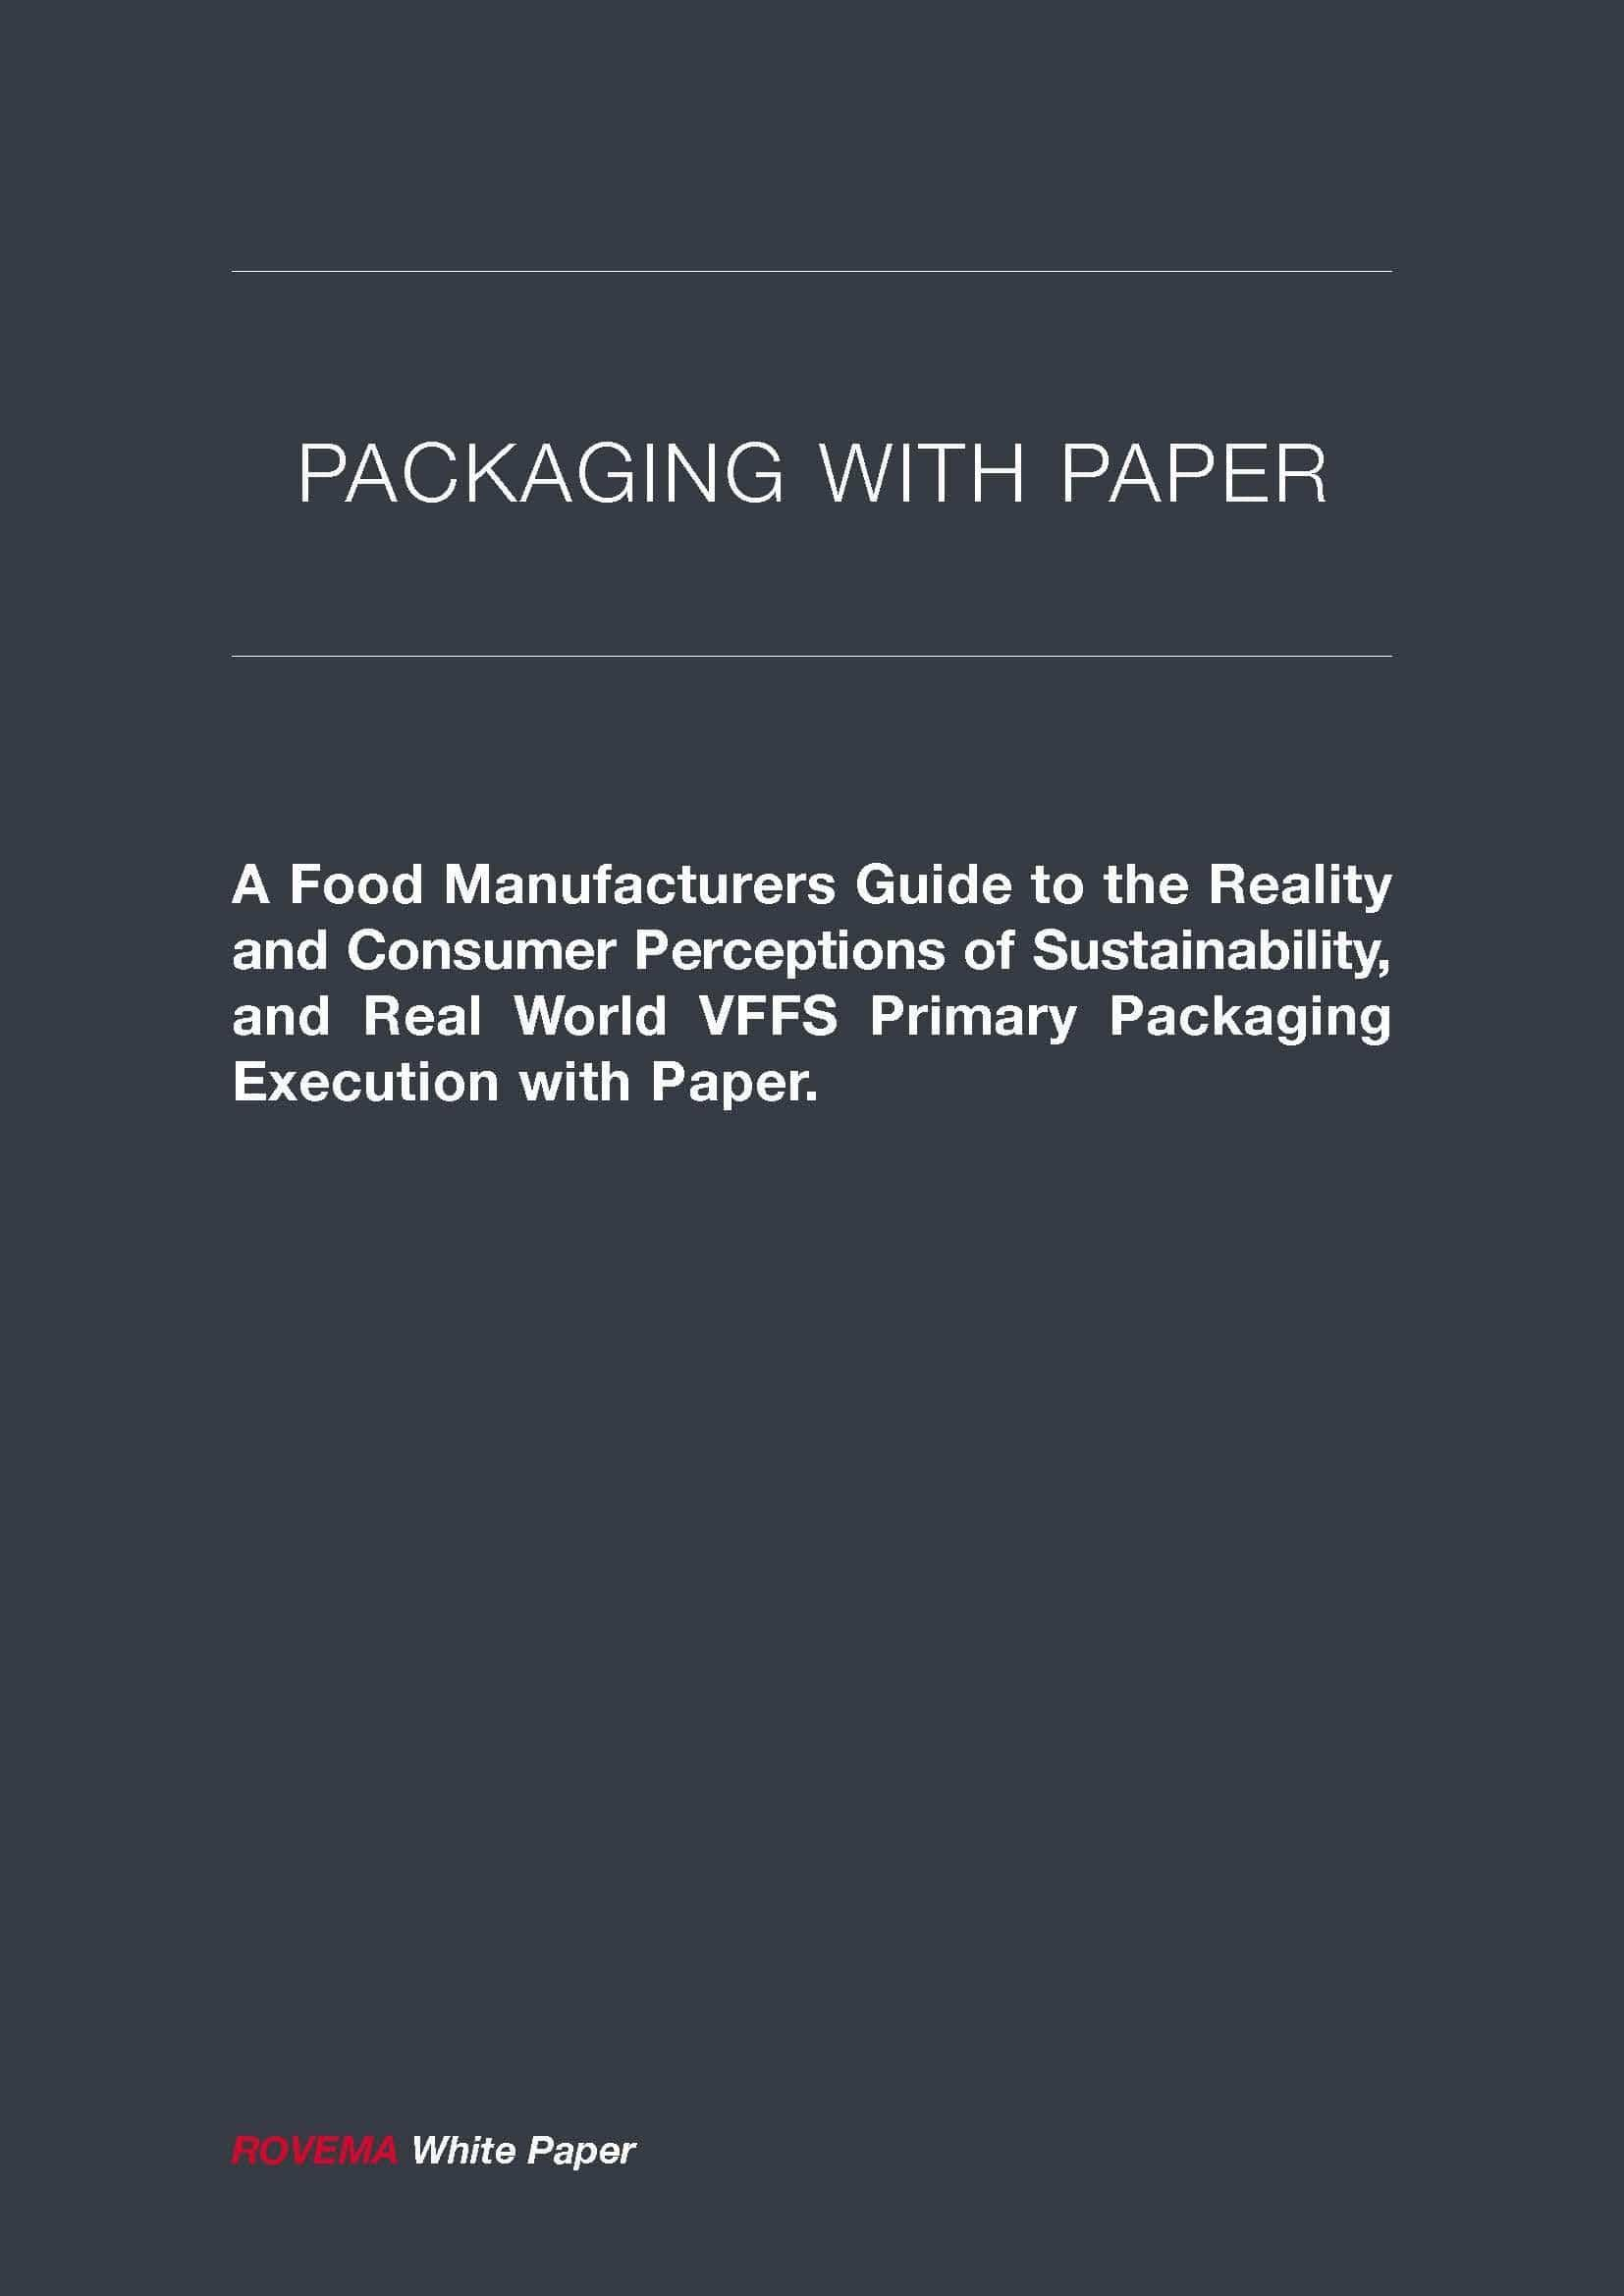 Roveman Paper Packaging for VFFS